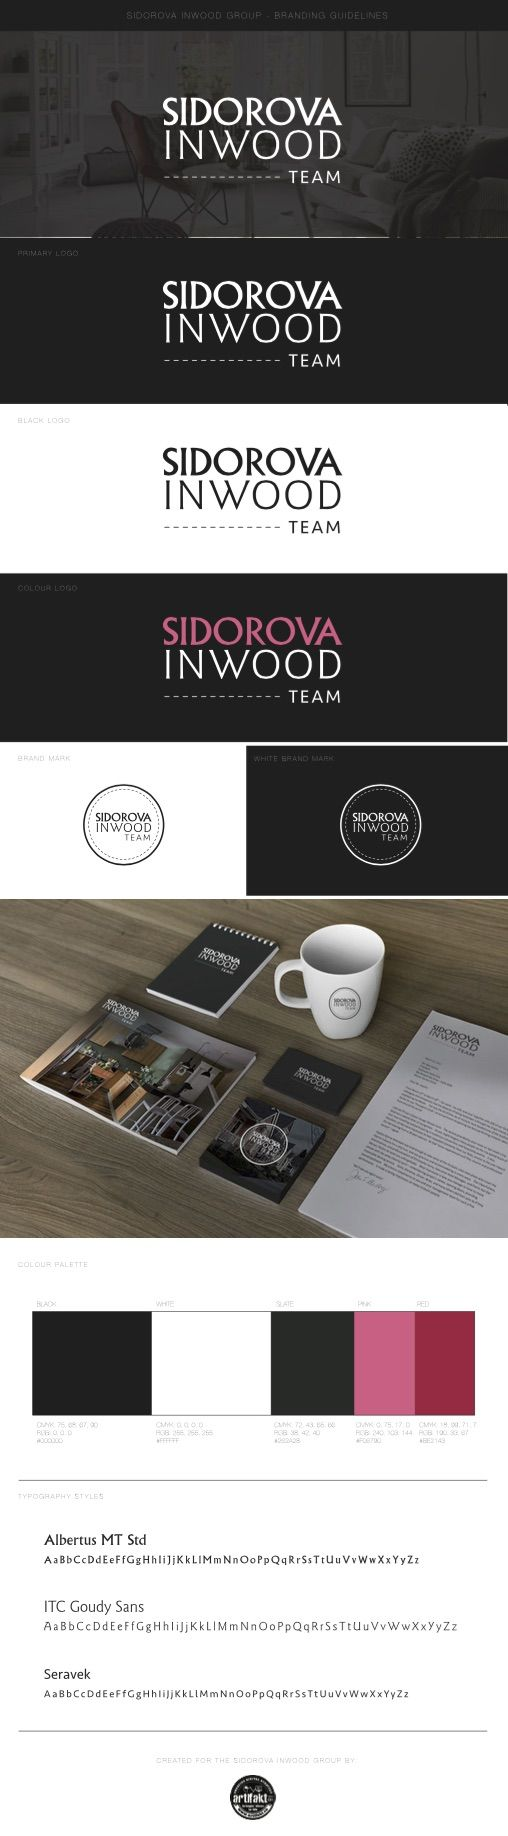 The completed branding guidelines we did for the Sidorova Inwood real estate team.